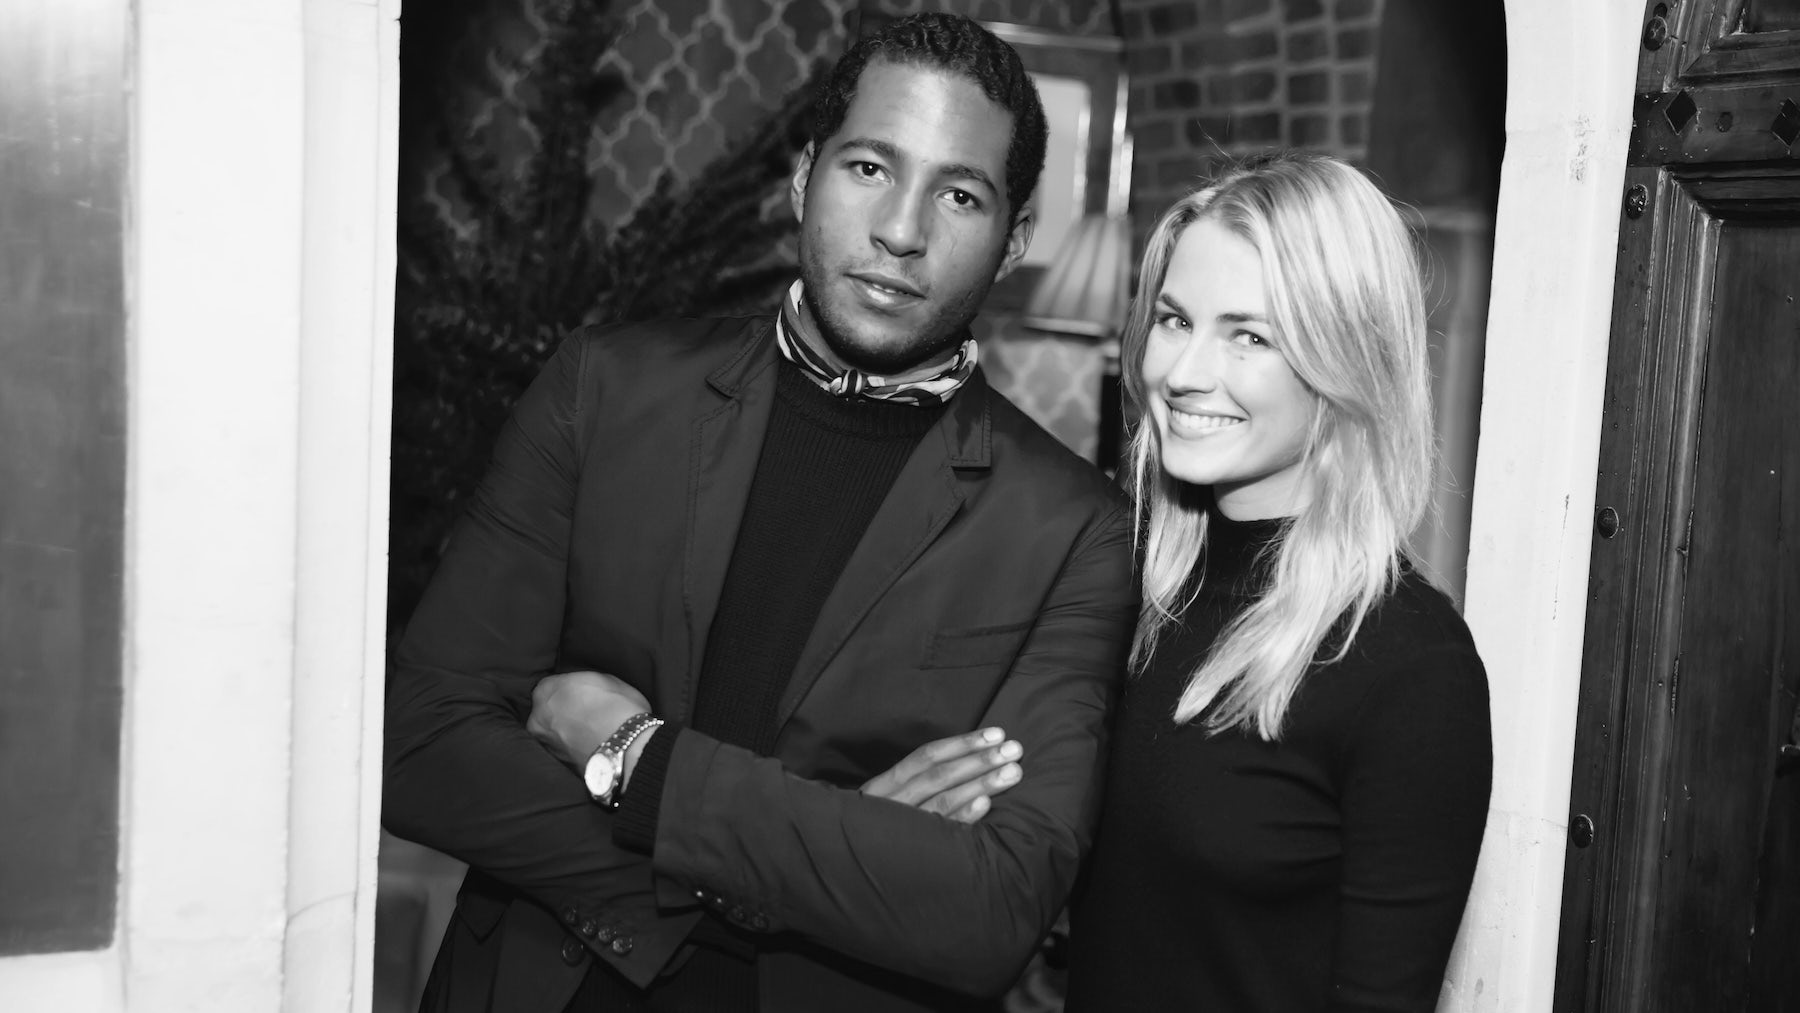 Hassan Pierre and Amanda Hearst | Source: Courtesy